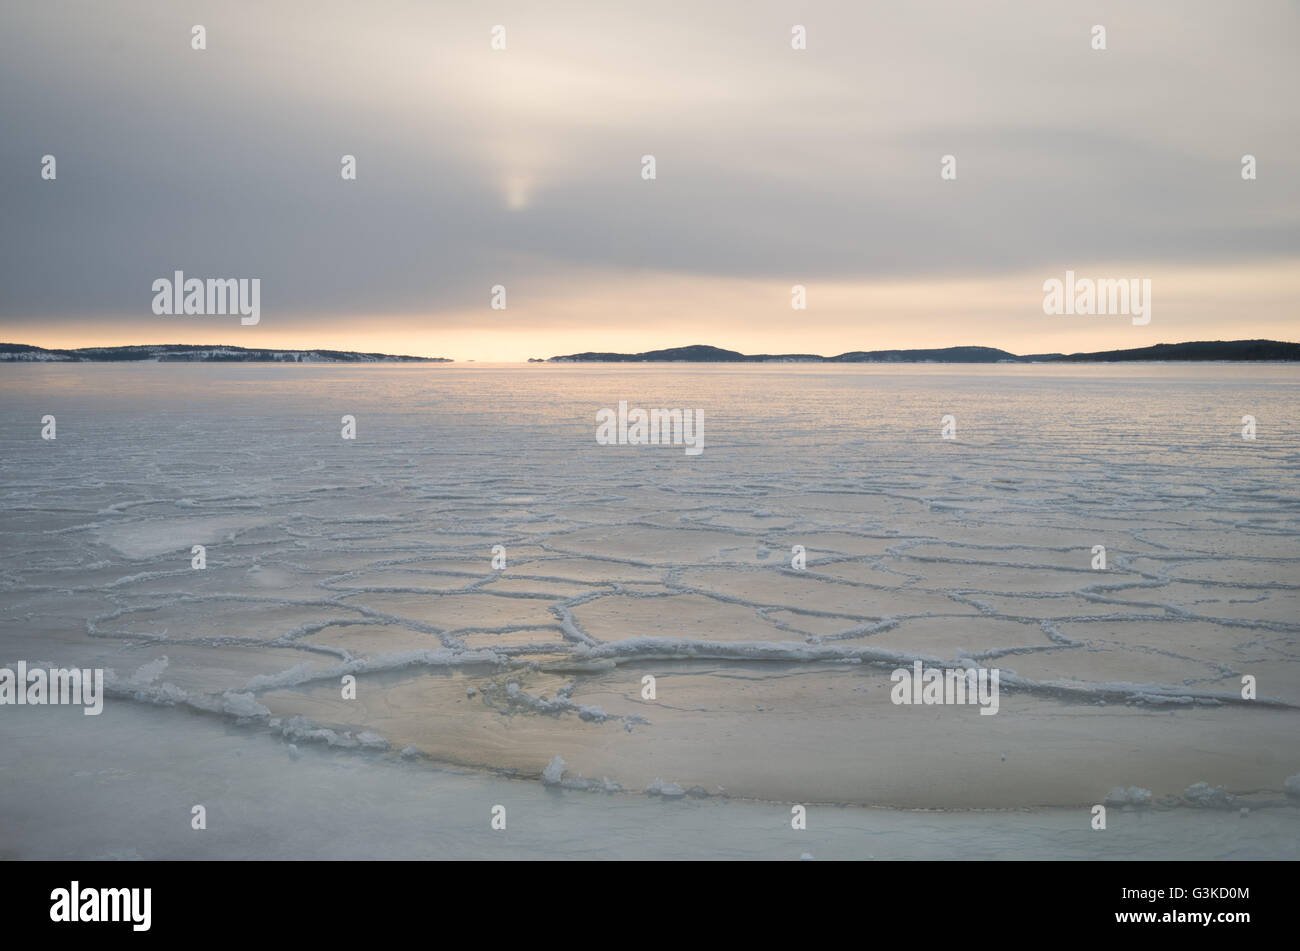 Sun low on the horizon over sea ice in the archipelago outside of Örnsköldsvik in the Northern part of - Stock Image